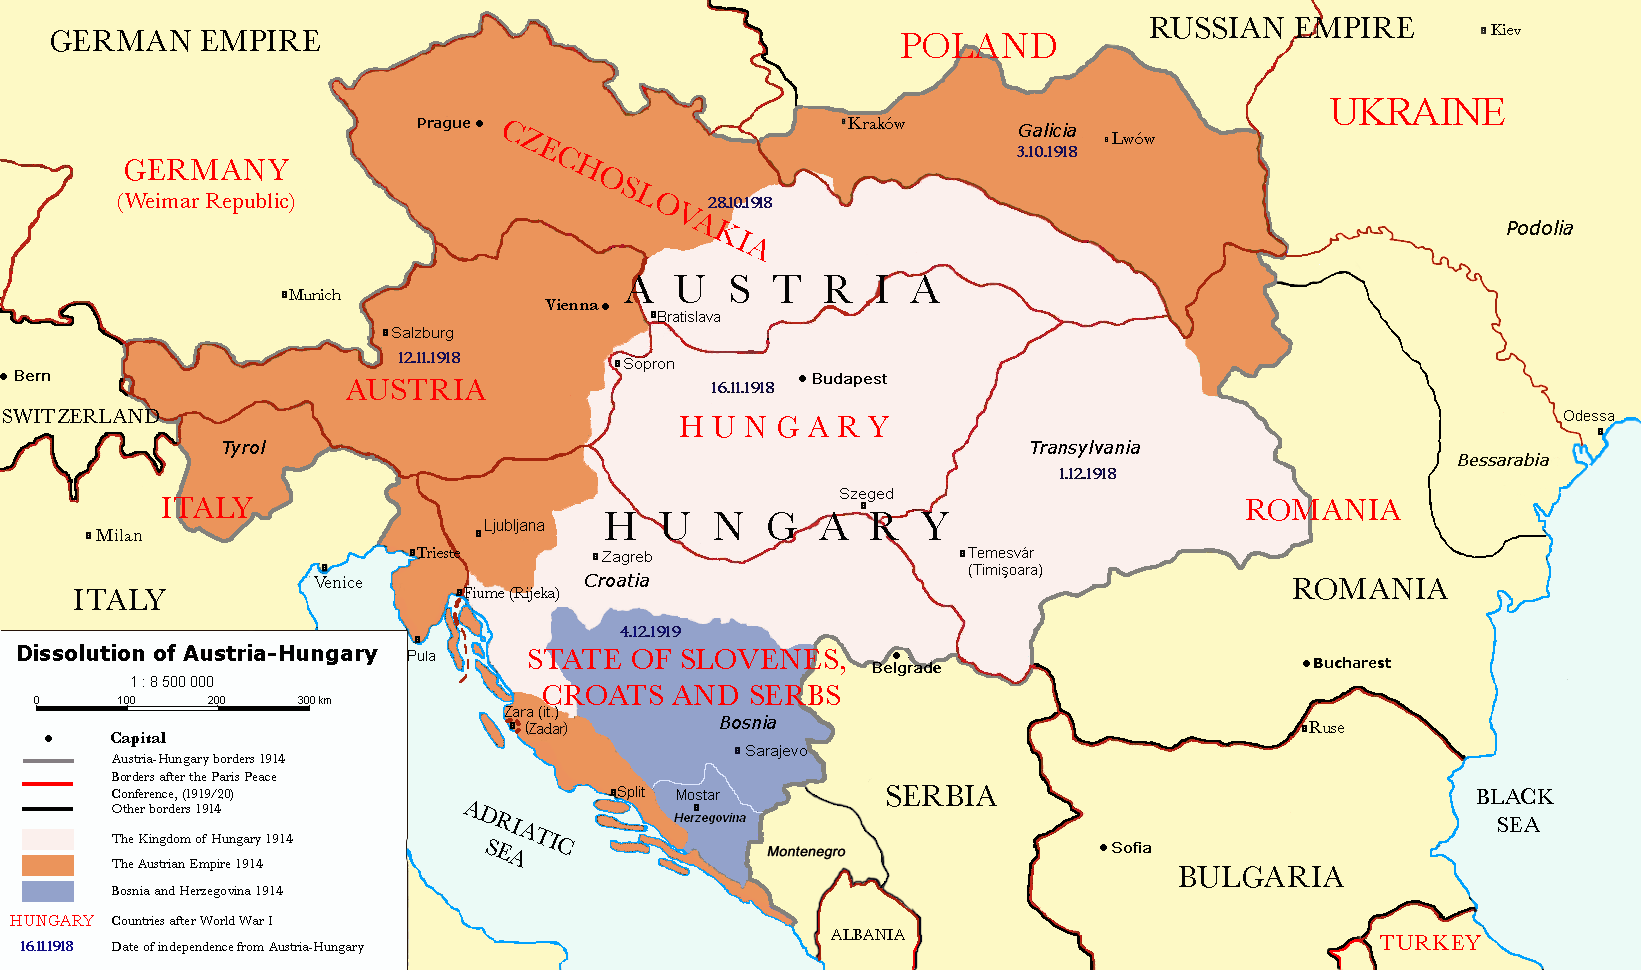 https://upload.wikimedia.org/wikipedia/commons/5/50/Dissolution_of_Austria-Hungary.png